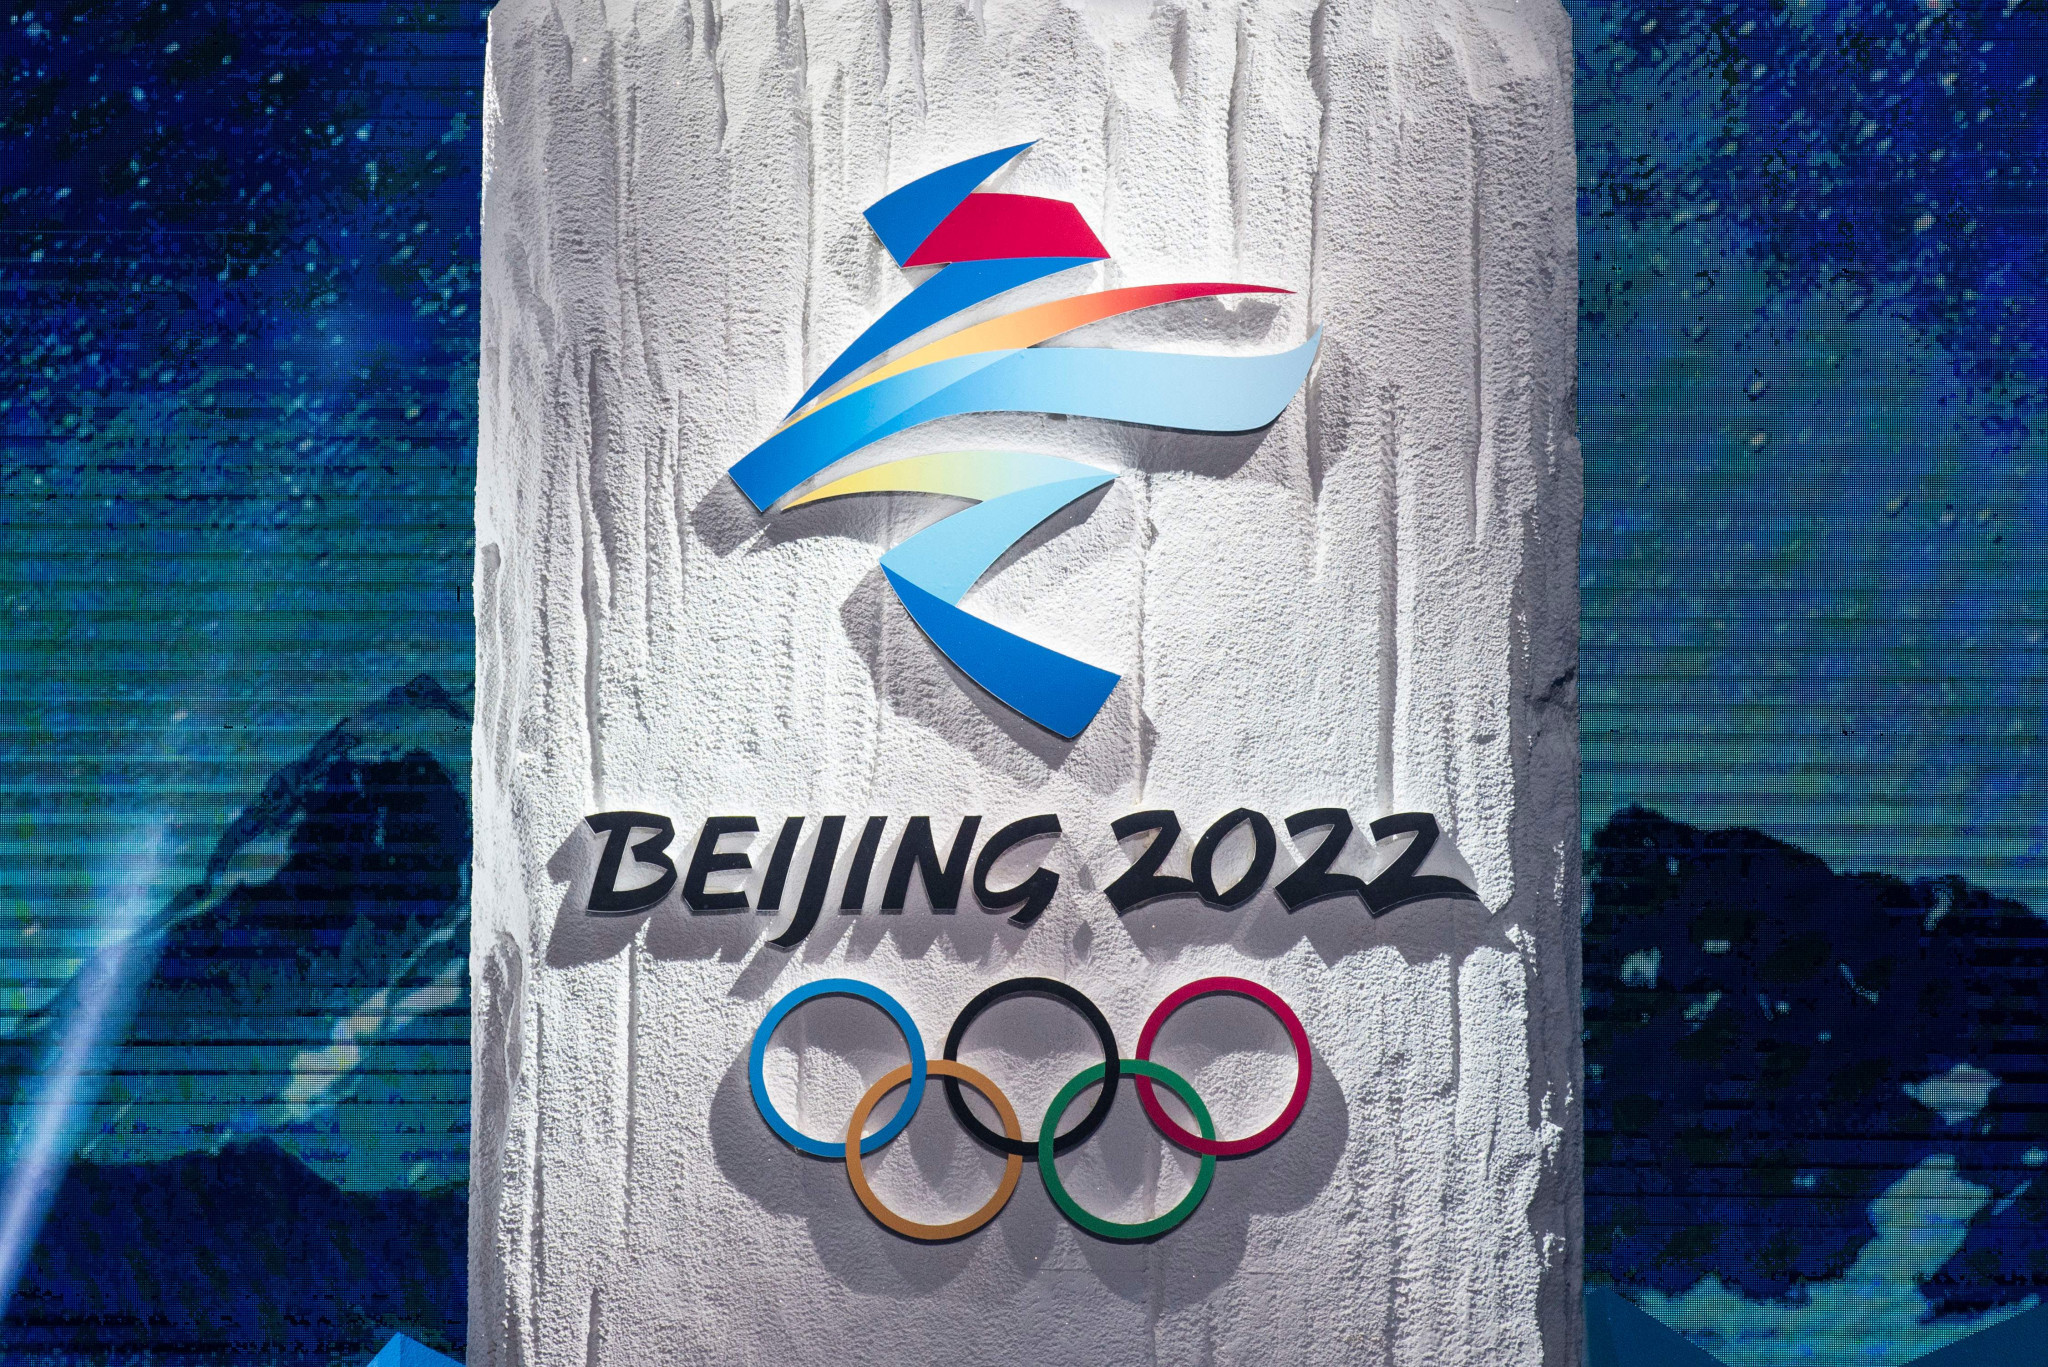 Beijing 2022 have attempted to play down environmental concerns before the Winter Olympics ©Getty Images